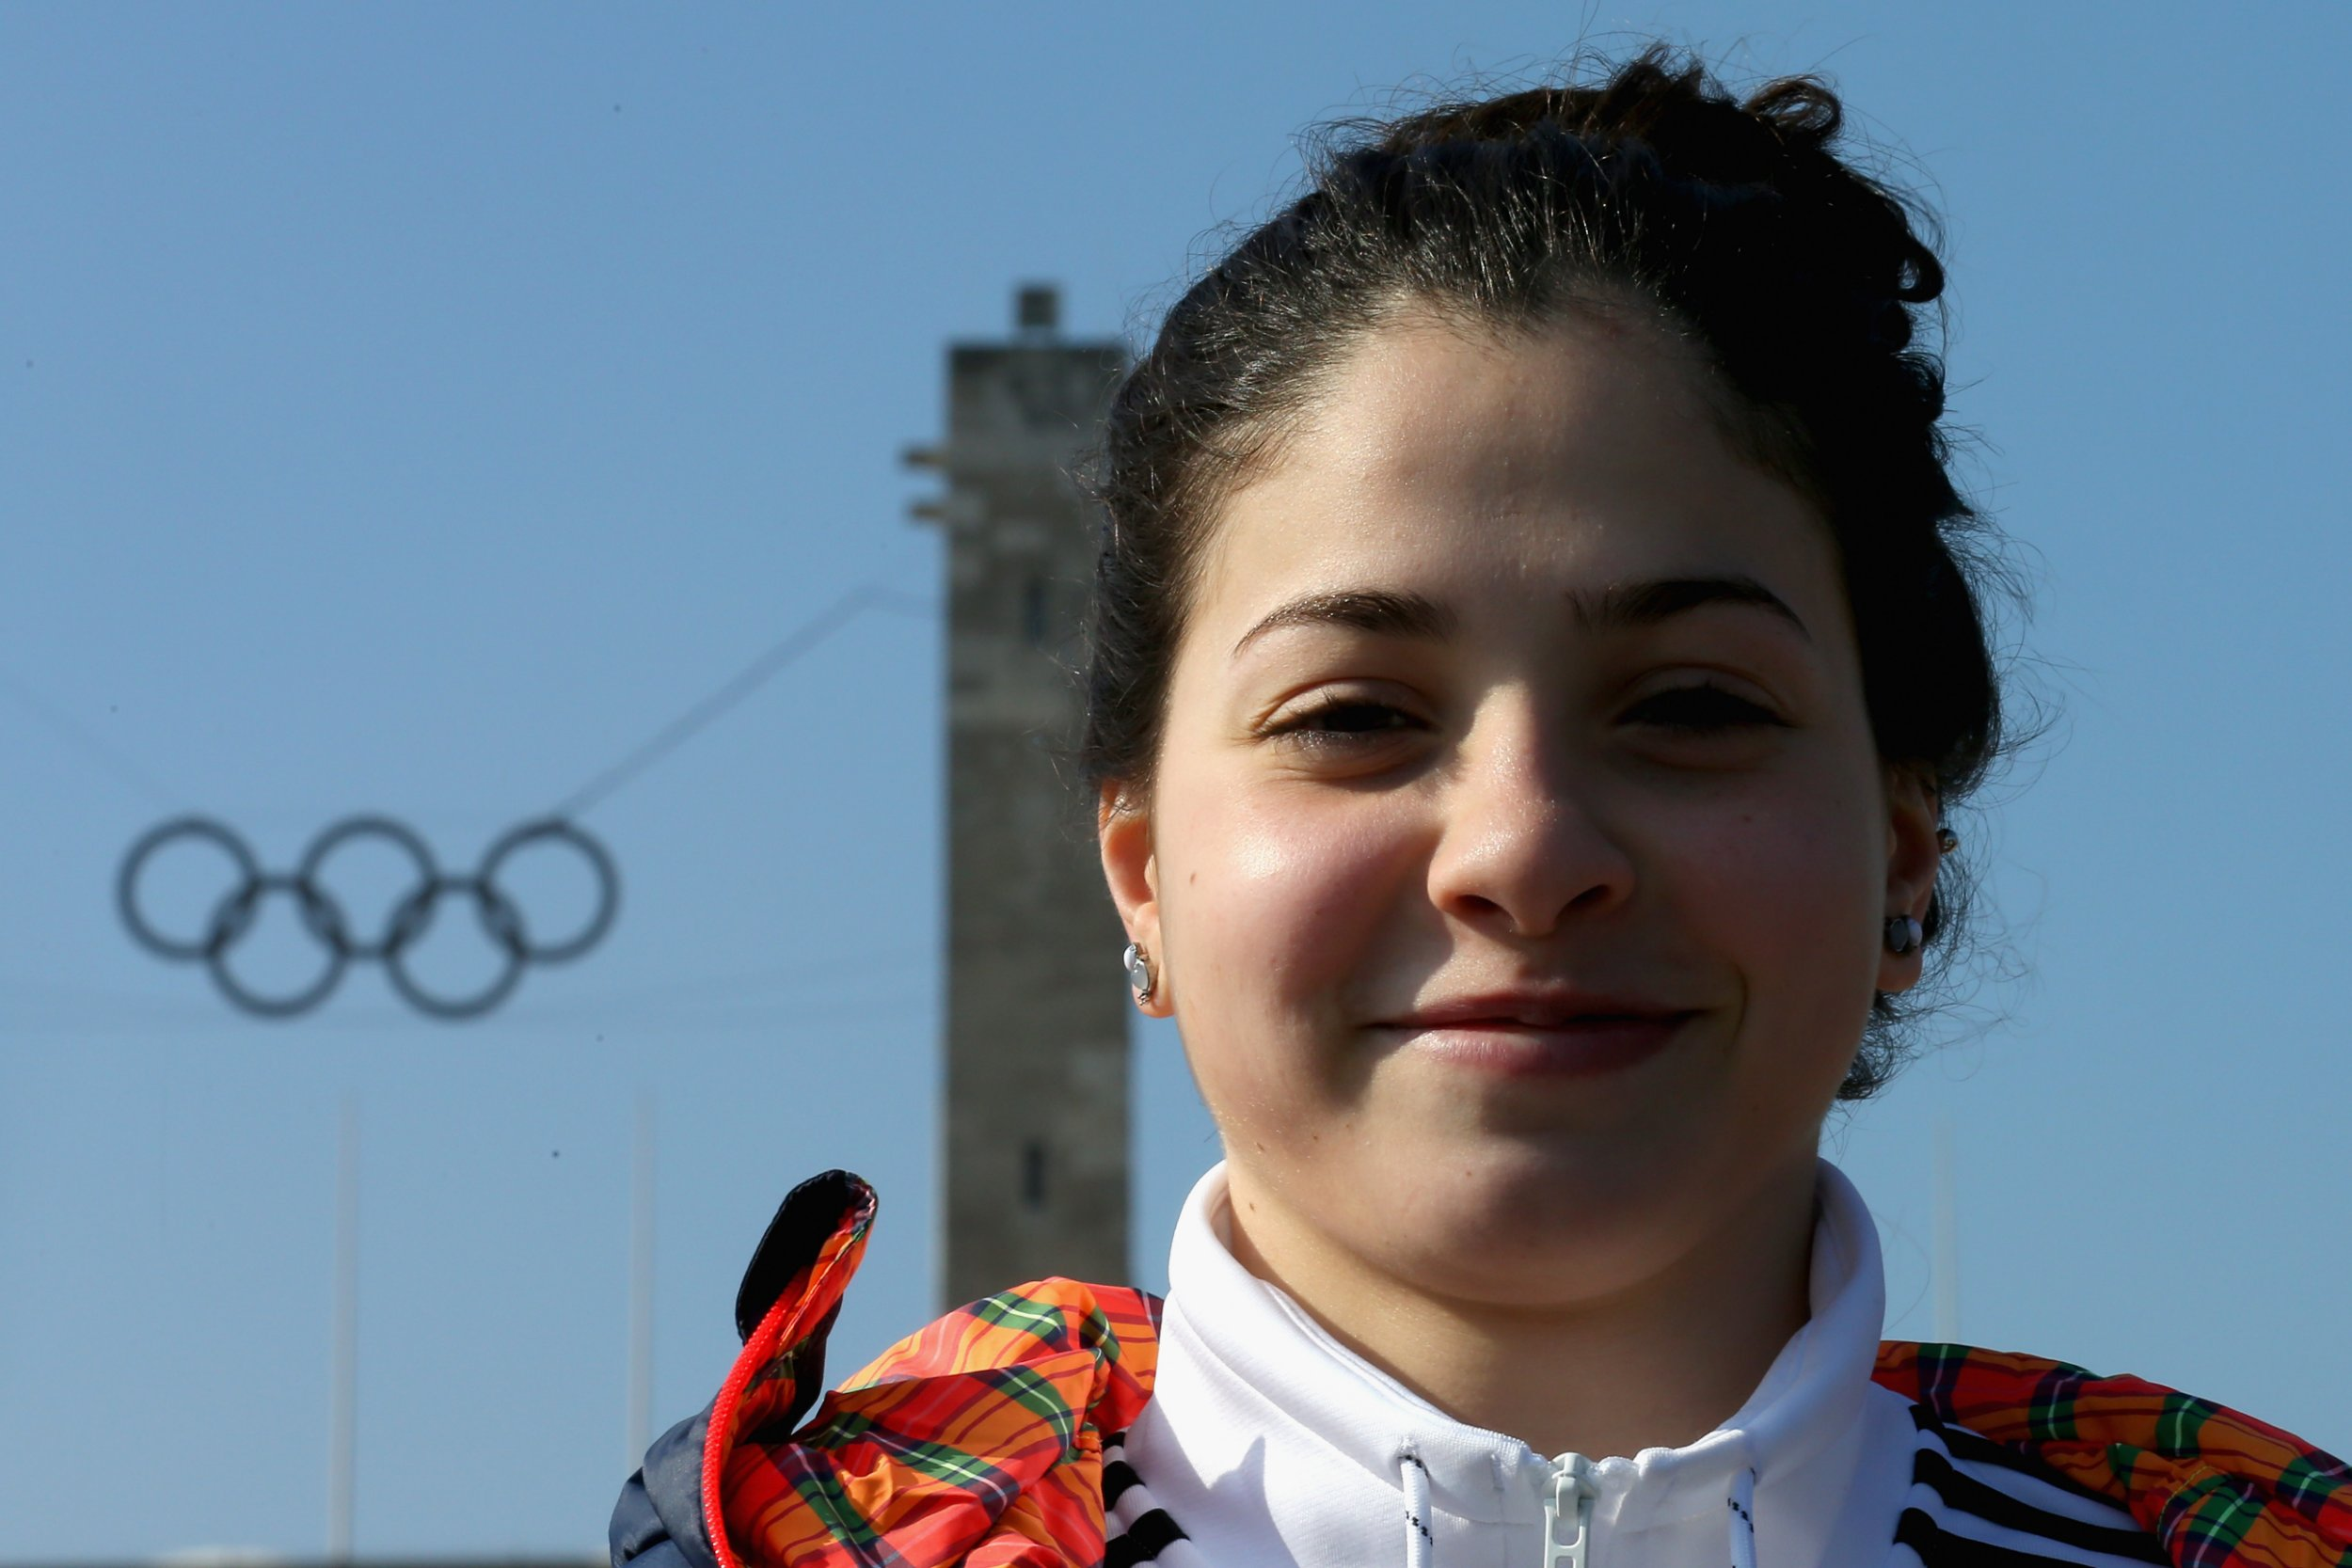 BERLIN, GERMANY - MARCH 09: Yusra Mardini of Syria visit the Olympiastadium Olympiapark Berlin on March 9, 2016 in Berlin, Germany. (Photo by Alexander Hassenstein/Getty Images for IOC)